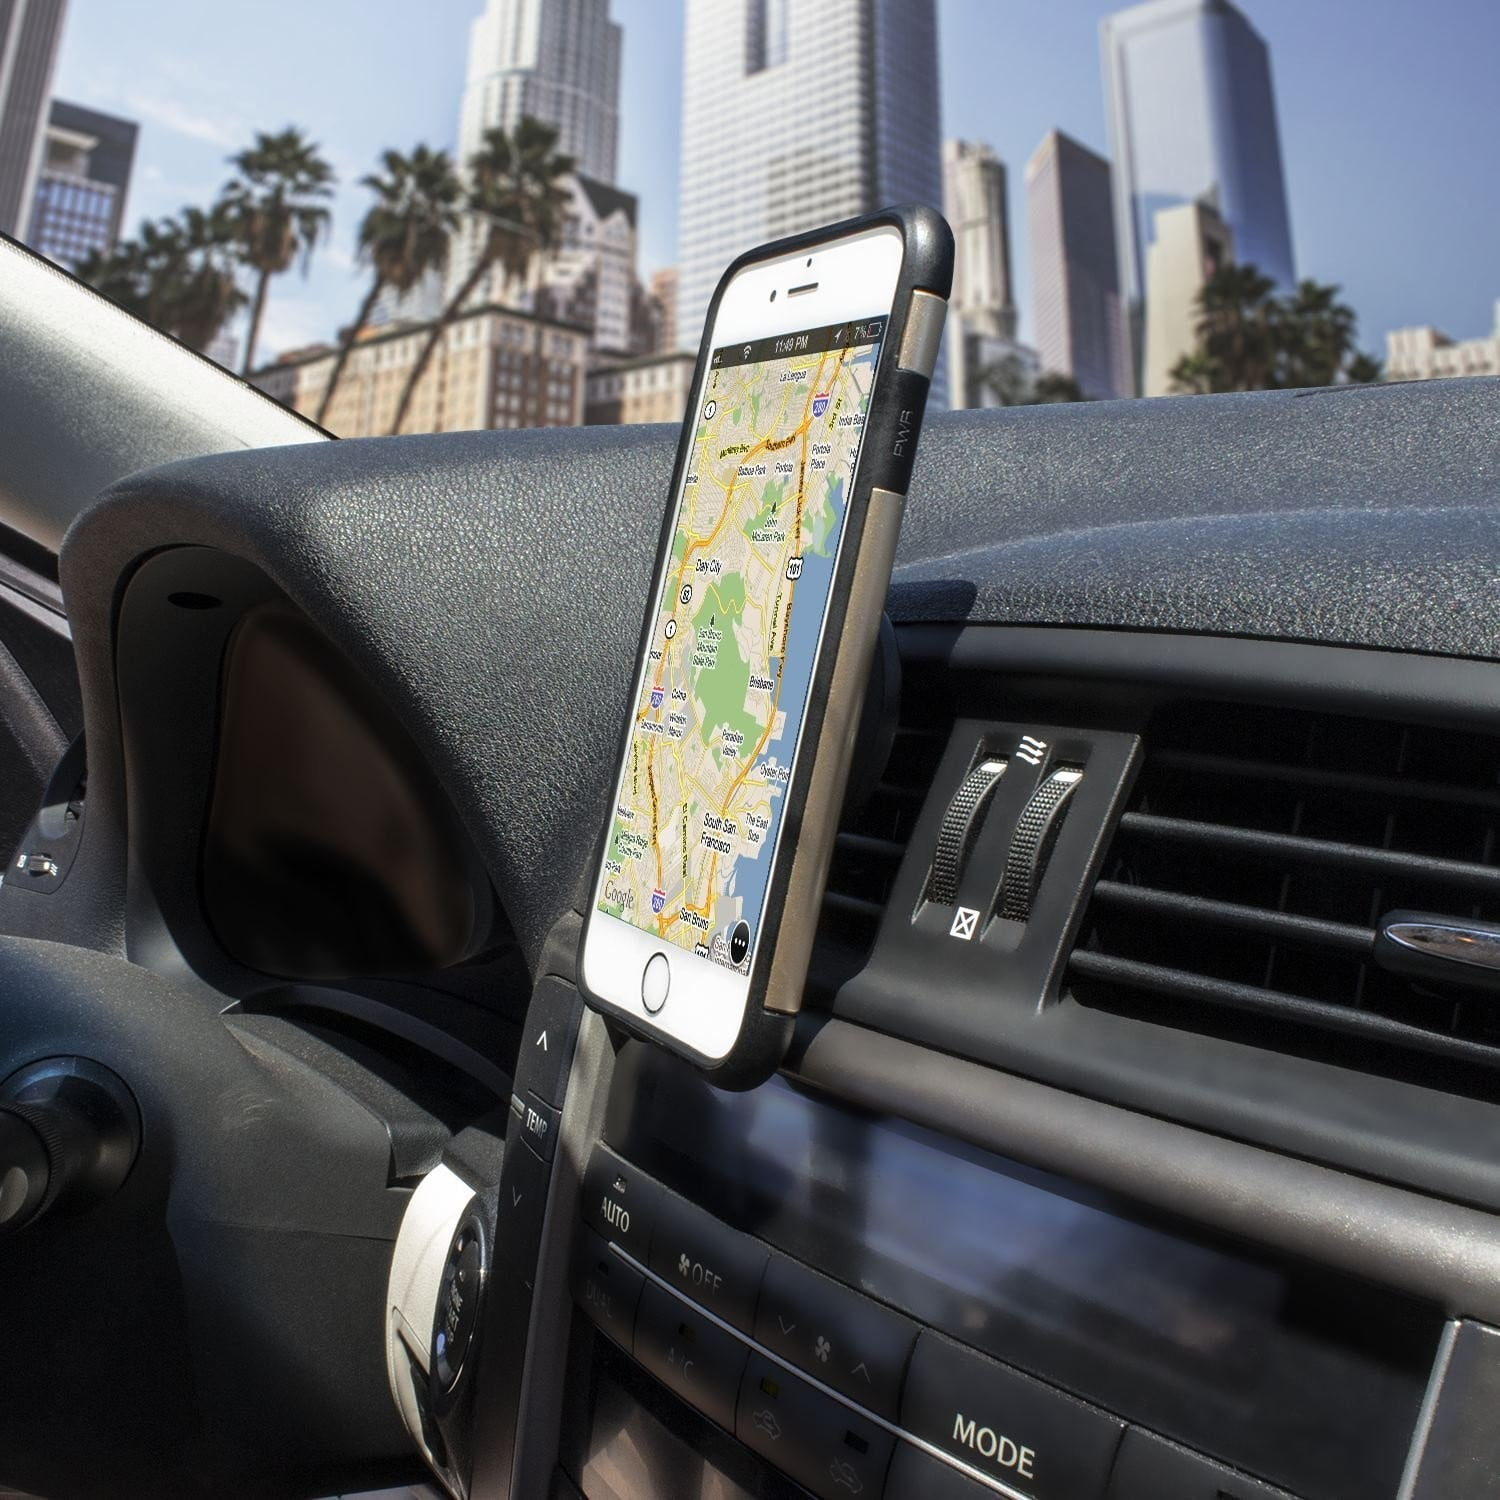 Mobility magnetic universal car mount - Digital Trends ...